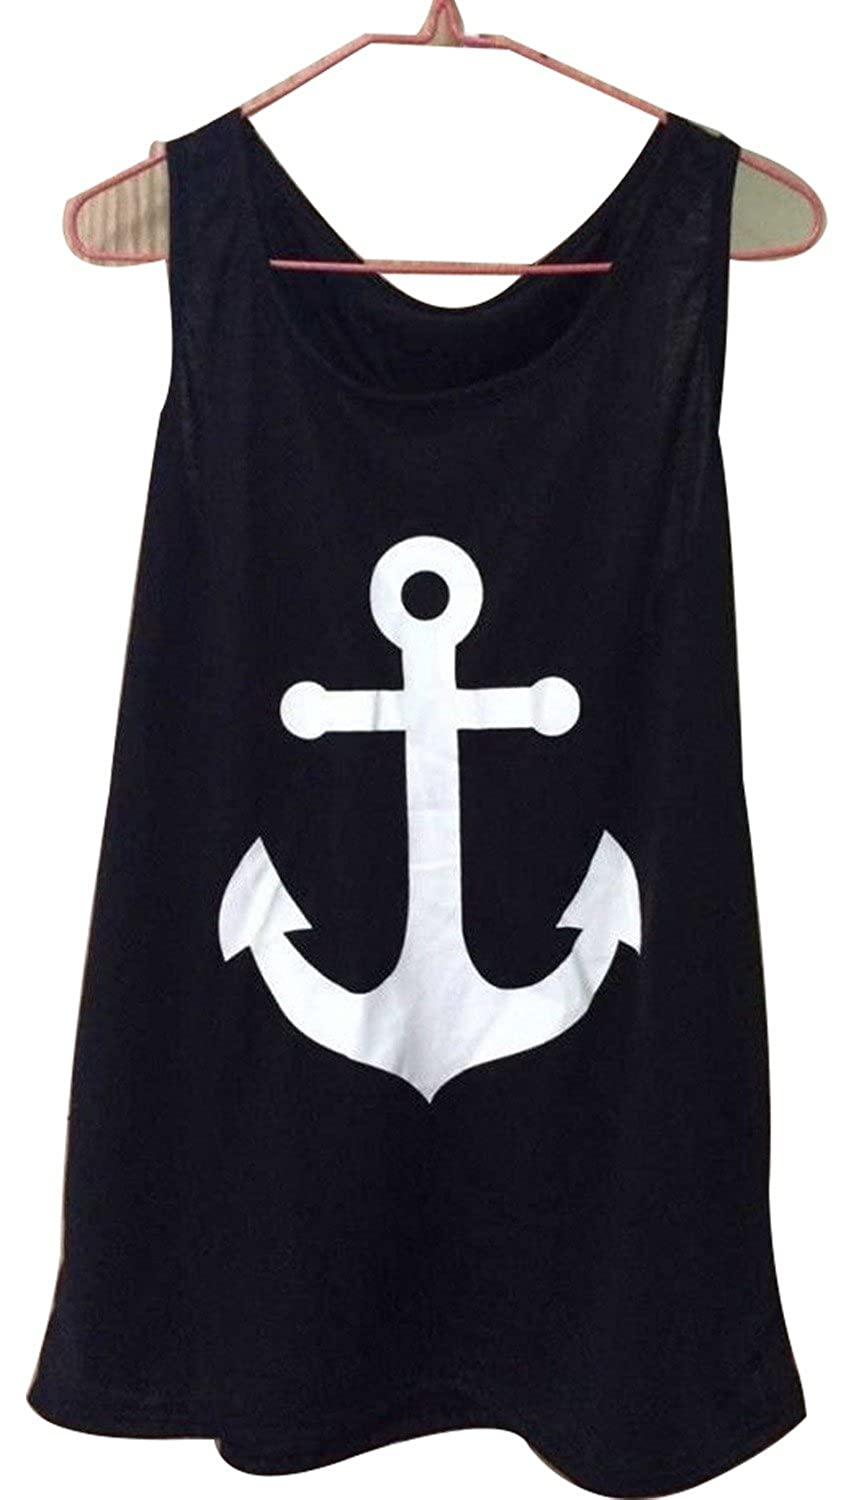 Imvation Women Girls Sleeveless Halter Backless Low O-Neck Anchor Print T-Shirt Vest